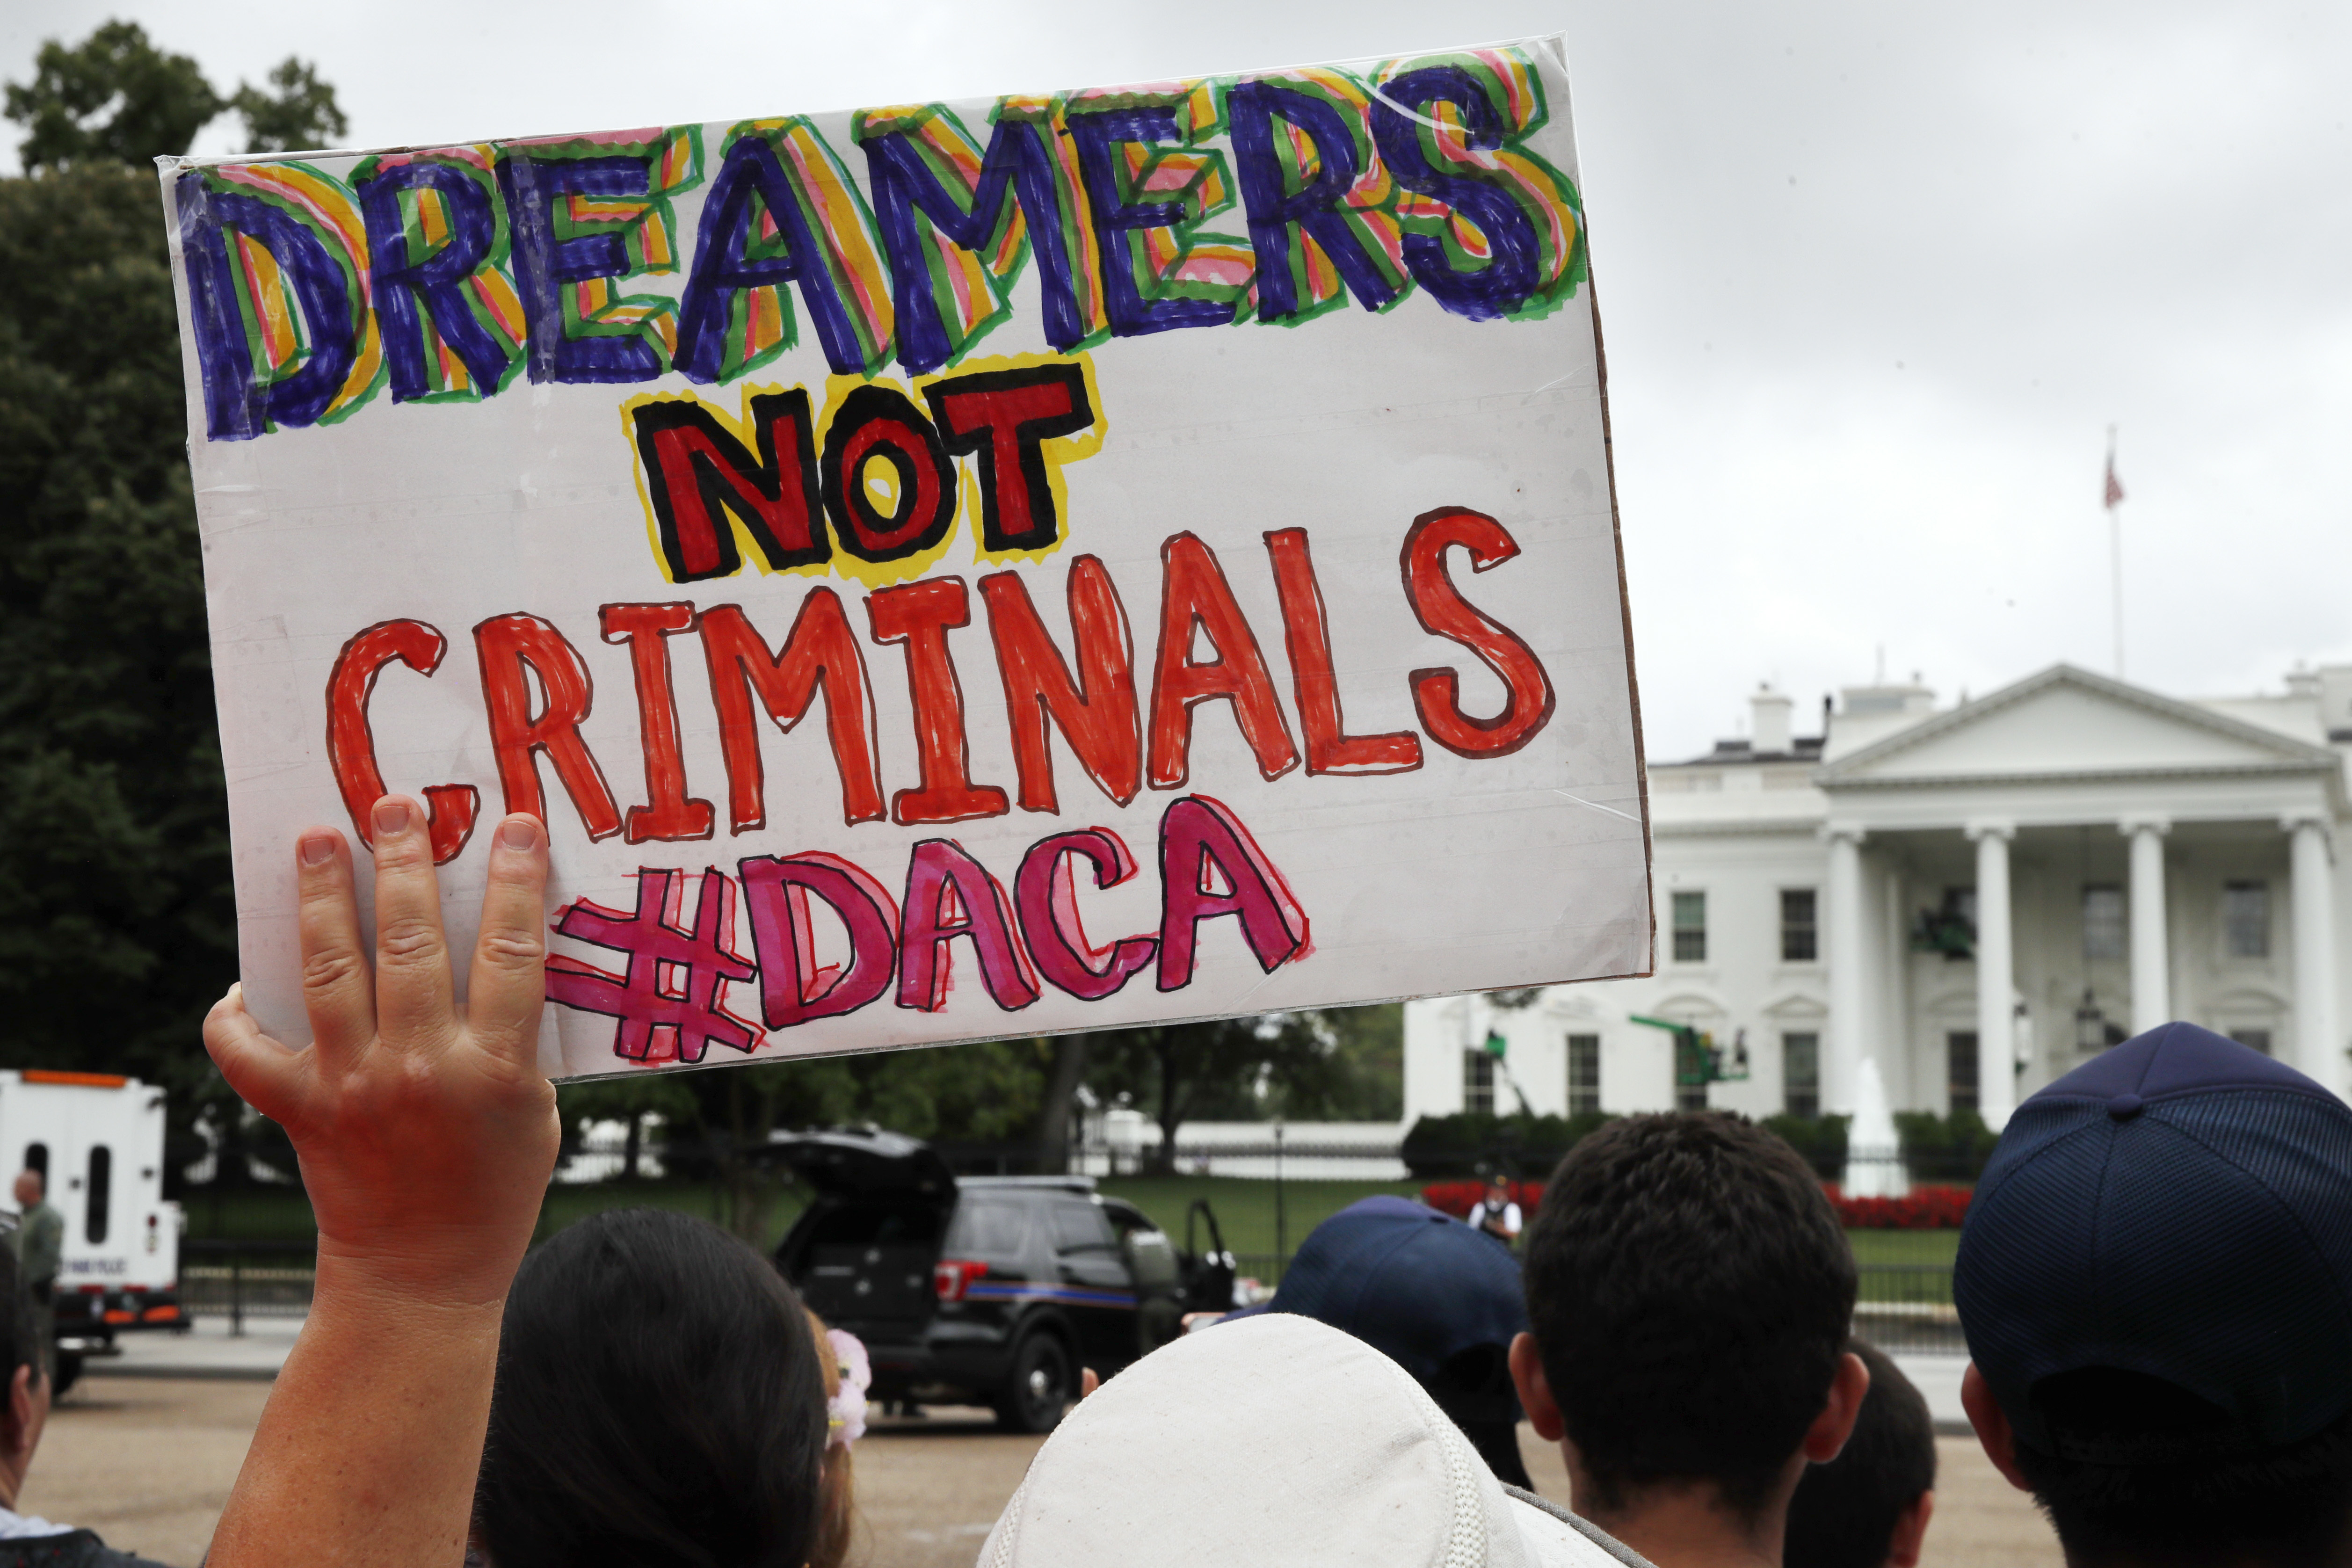 A woman holds up a signs in support of the Obama administration program known as Deferred Action for Childhood Arrivals, or DACA, during an immigration reform rally, Tuesday, Aug. 15, 2017, at the White House in Washington.